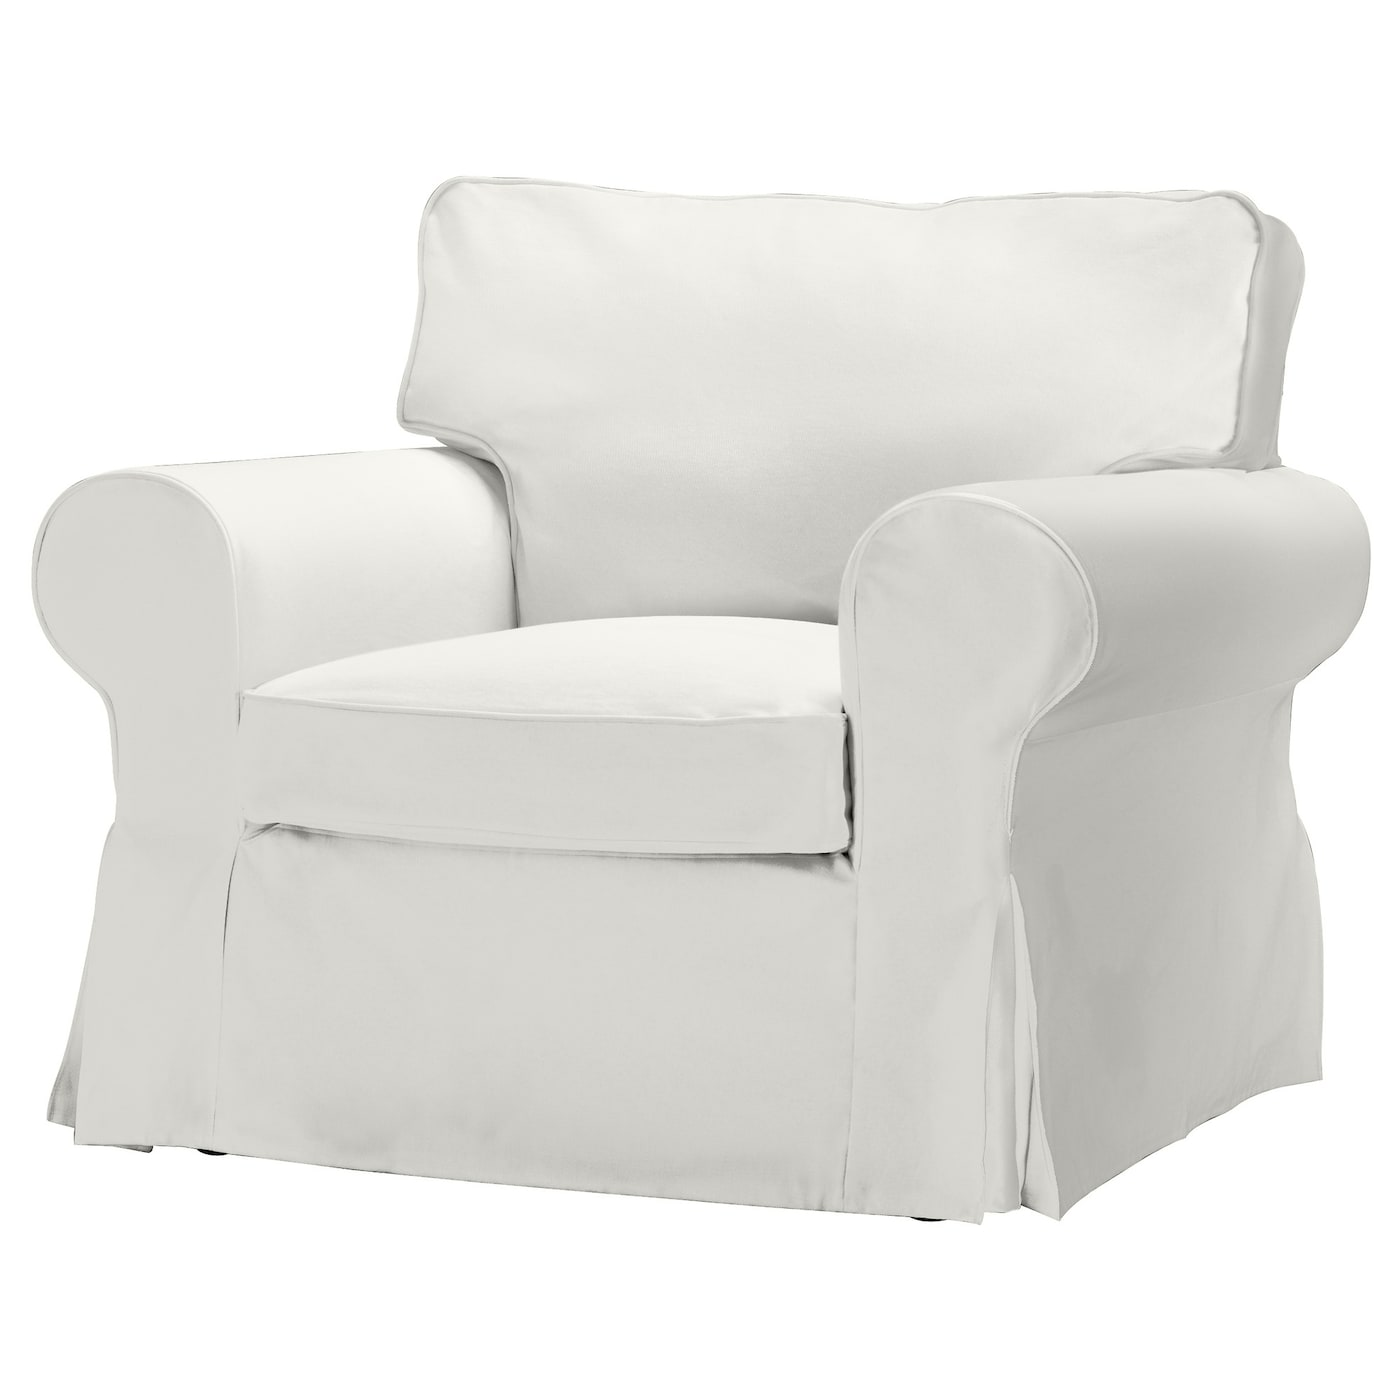 Superbe IKEA EKTORP Armchair The Cover Is Easy To Keep Clean As It Is Removable And  Can